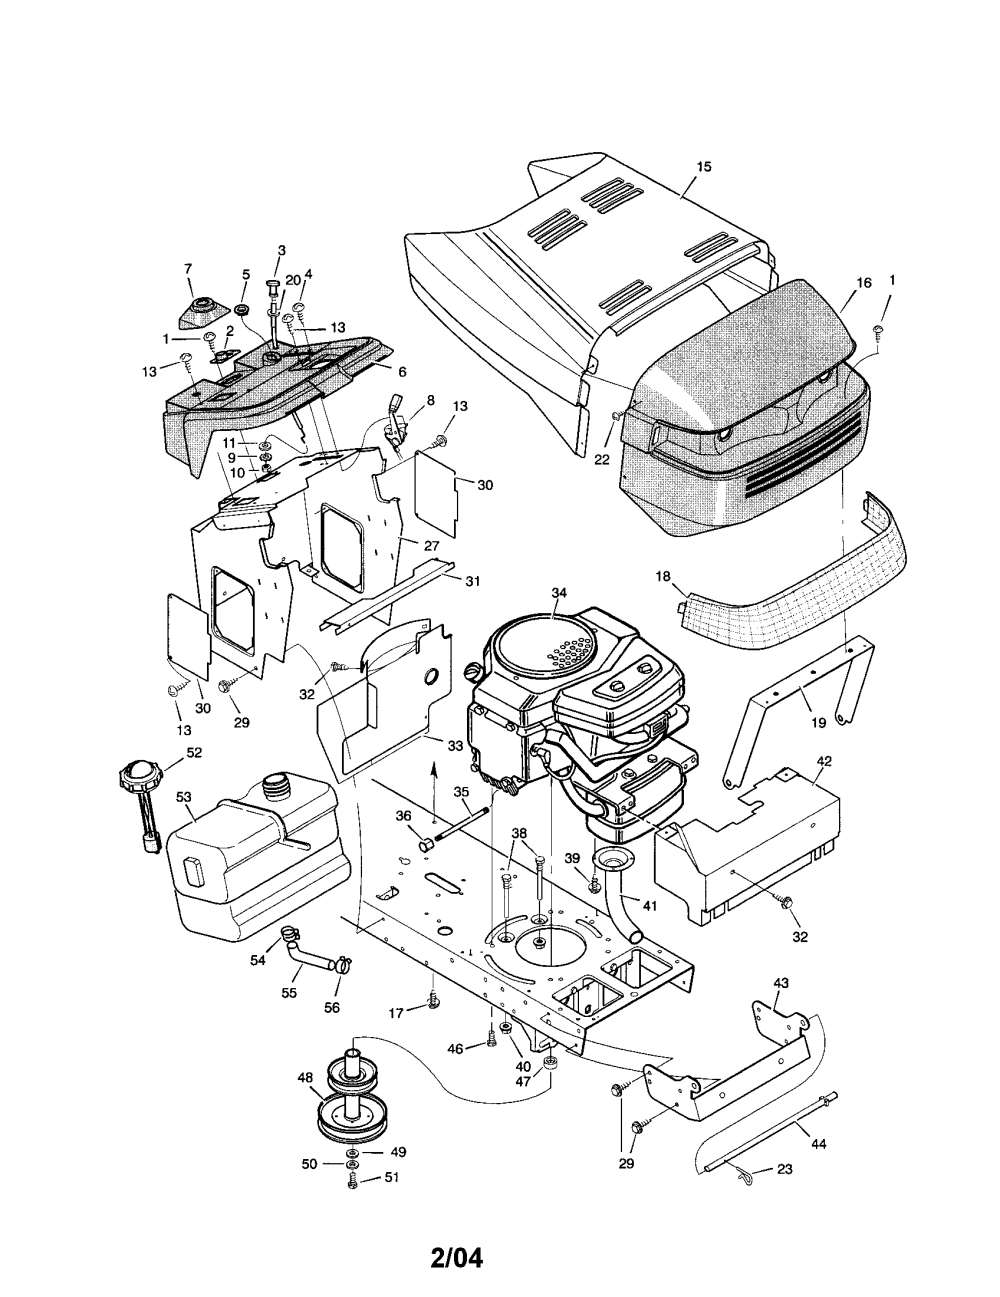 medium resolution of murray lawn mower engine diagram wiring diagram database murray lawn mower engine parts murray lawn mower engine diagram